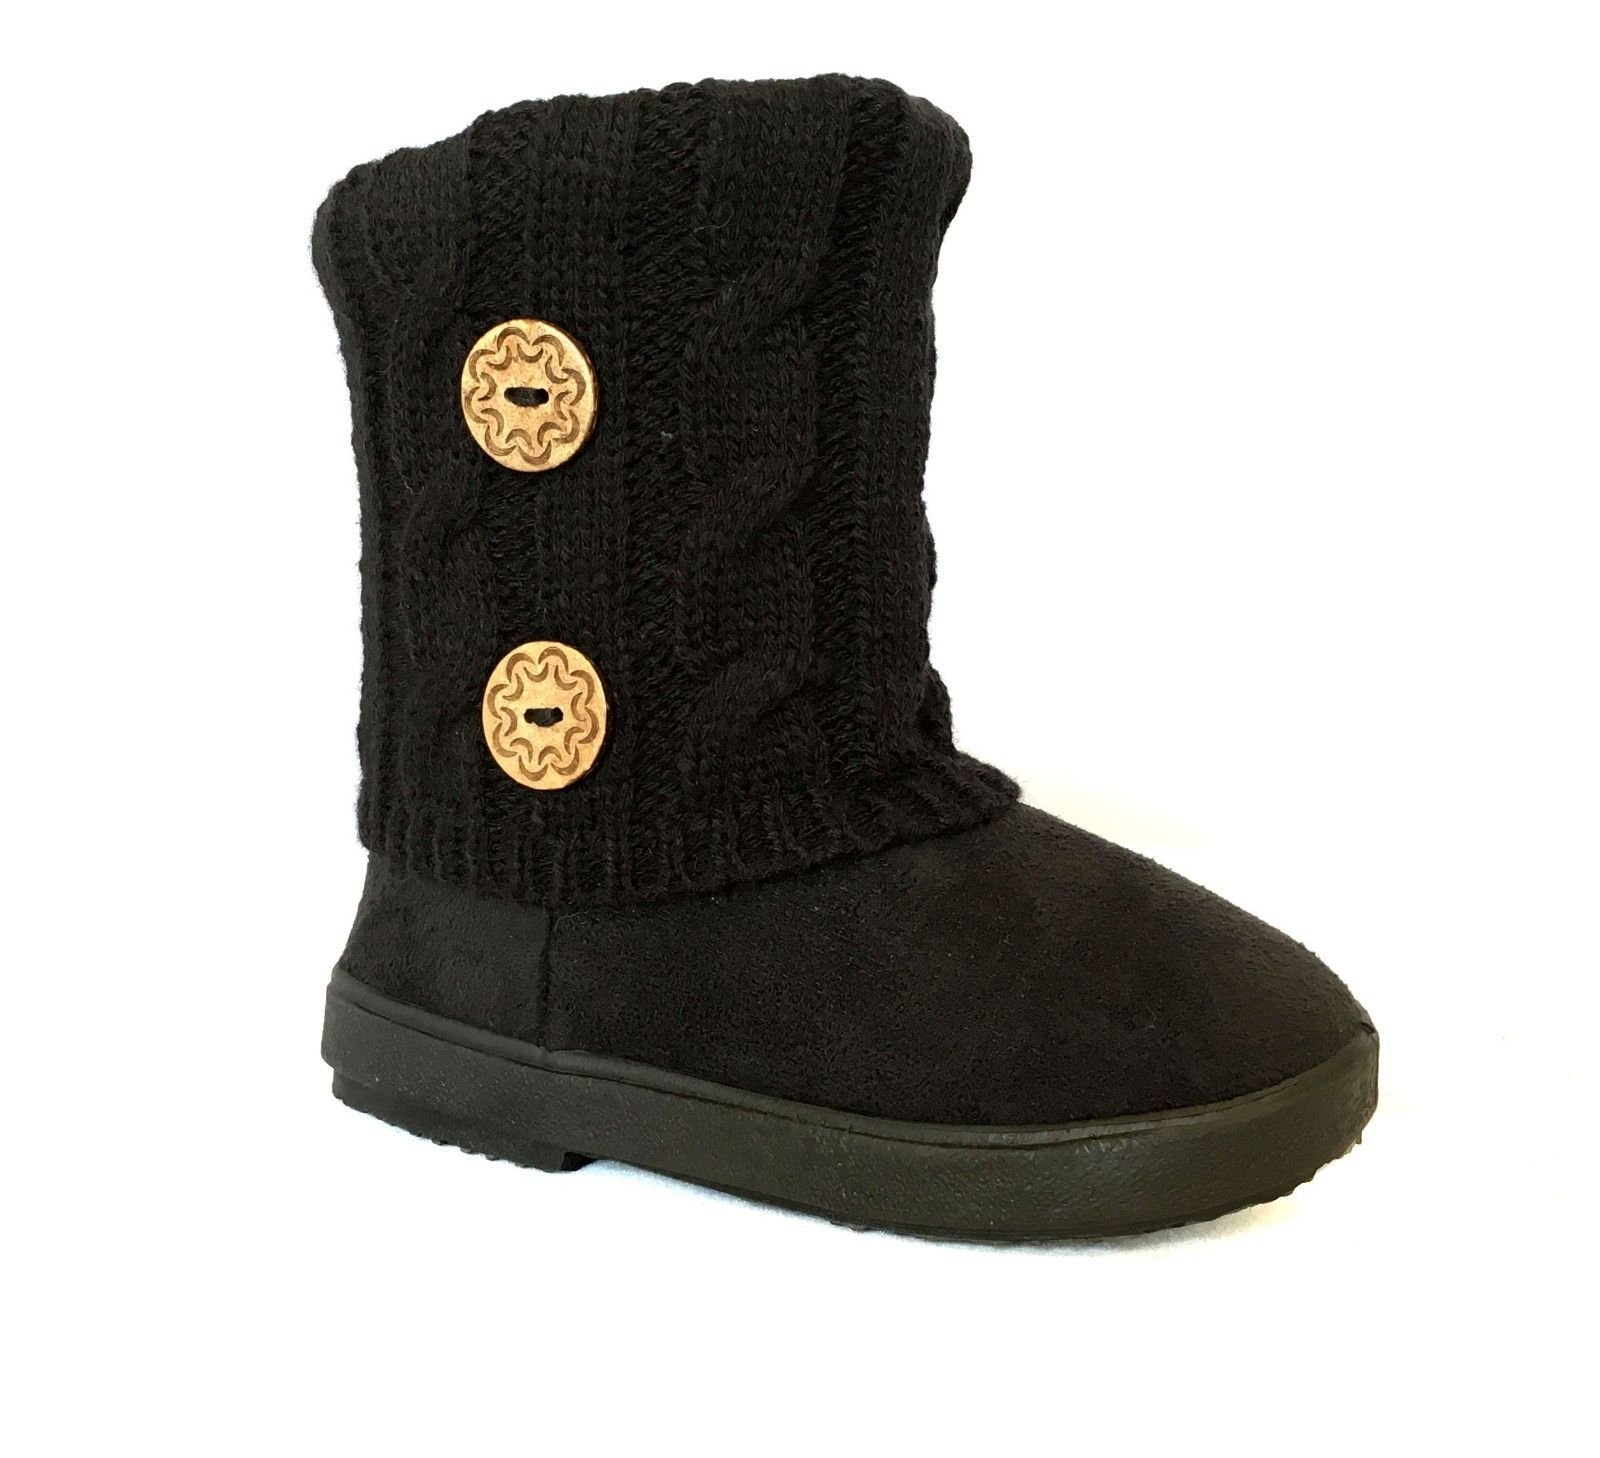 Kids Boots Toddler Girls Cute 2 Buttons Faux Fur Suede Knitting Shoe | 285 (Toddler 7, Black)